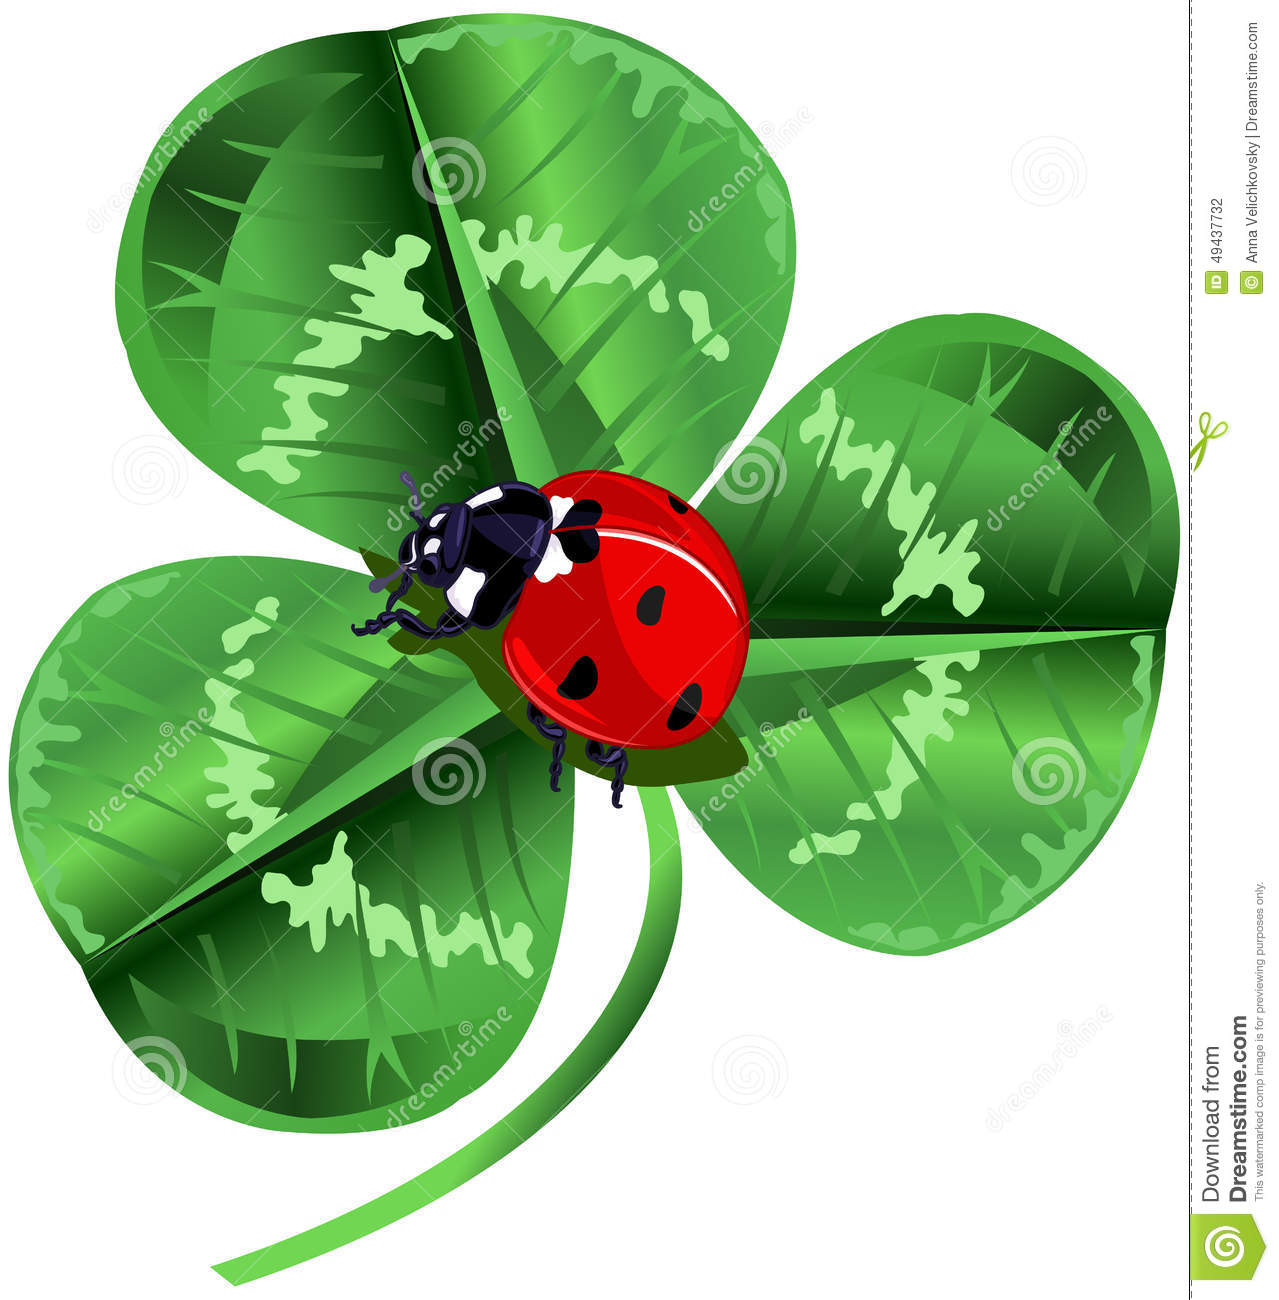 ... Day Three Leafed Clover And Ladybug Stock Vector - Image: 49437732